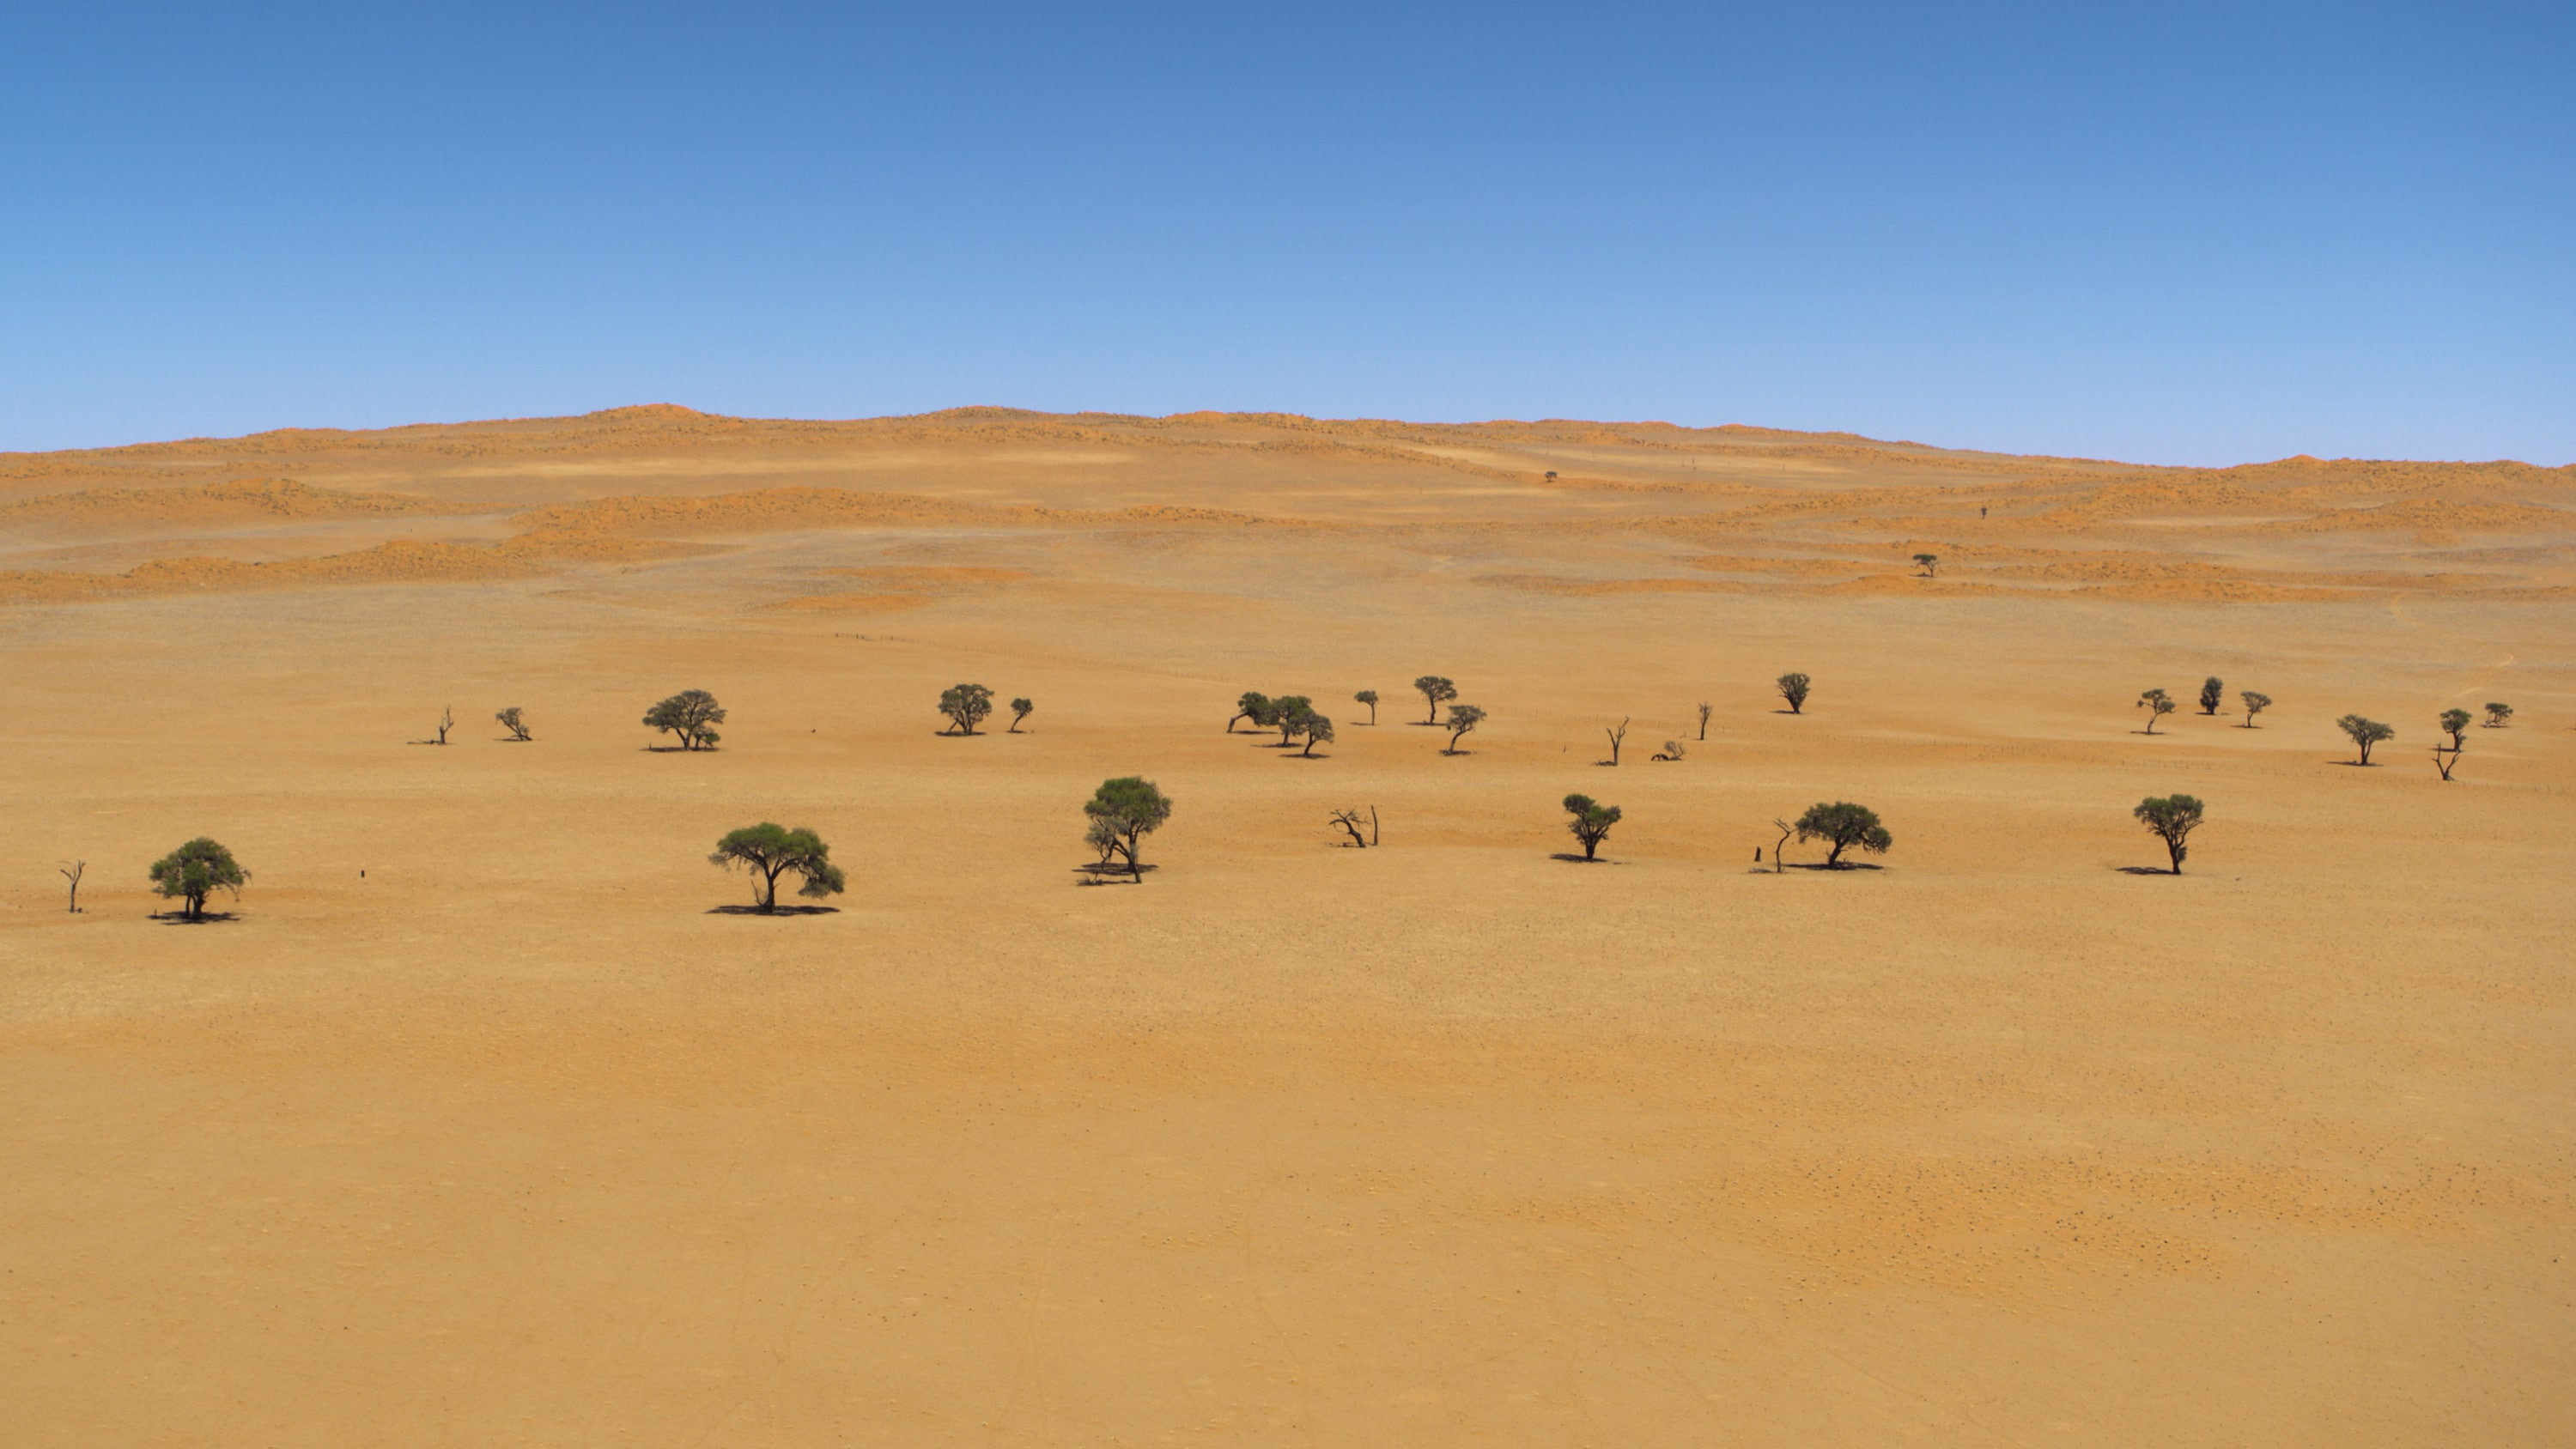 Trees dotted against the red ground in the Namib-Naukluft Park. (National Geographic for Disney+)